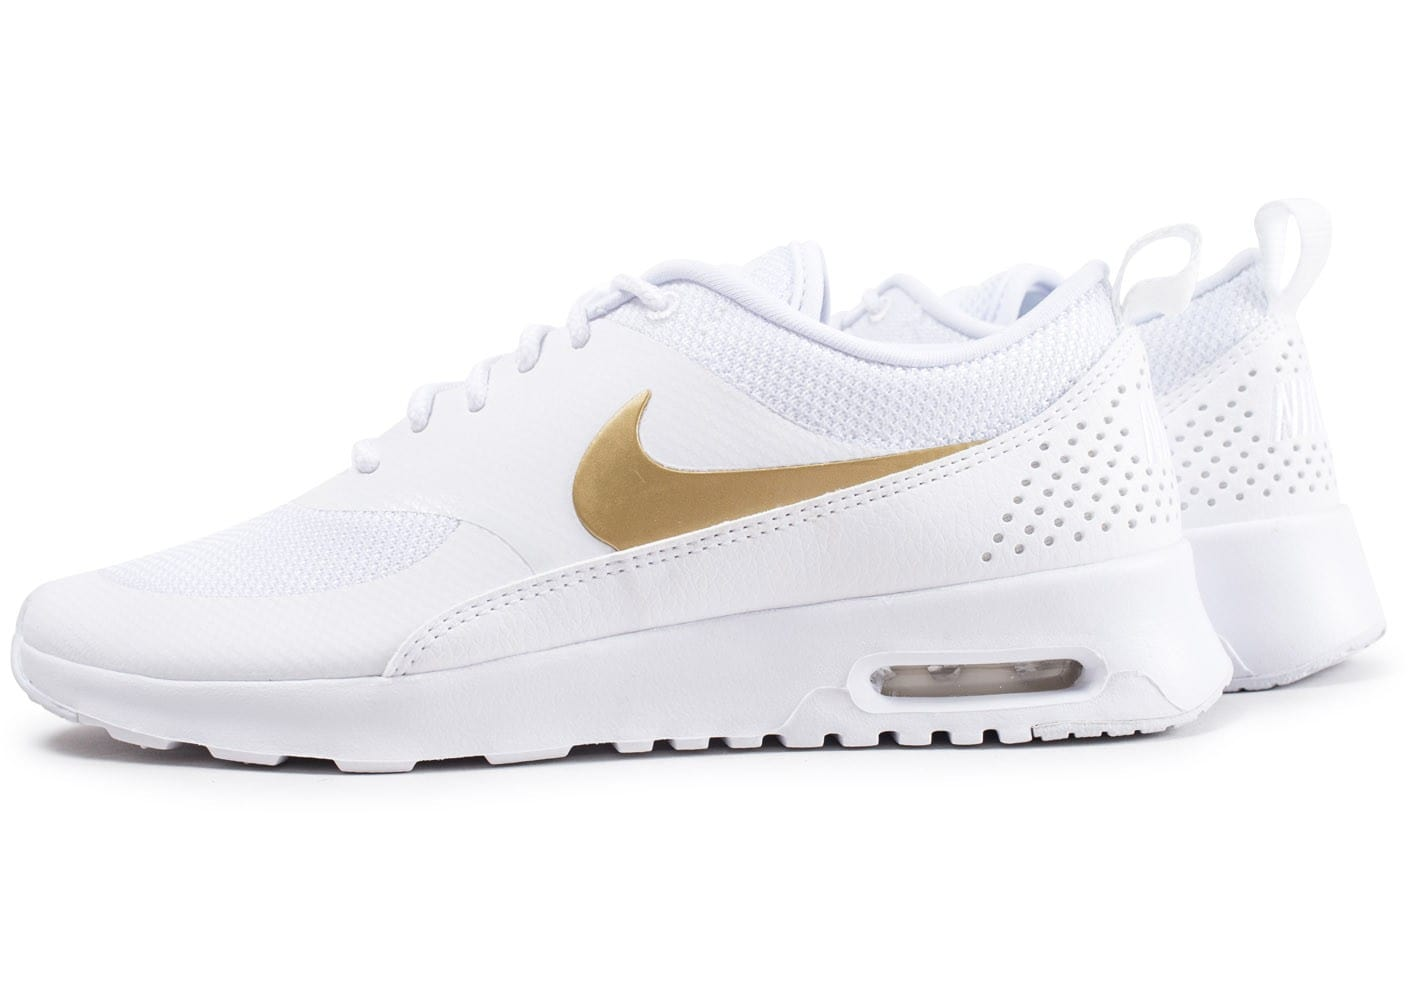 nouveau style 975b5 98578 Nike Air Max Thea blanche et or - Chaussures Baskets femme ...